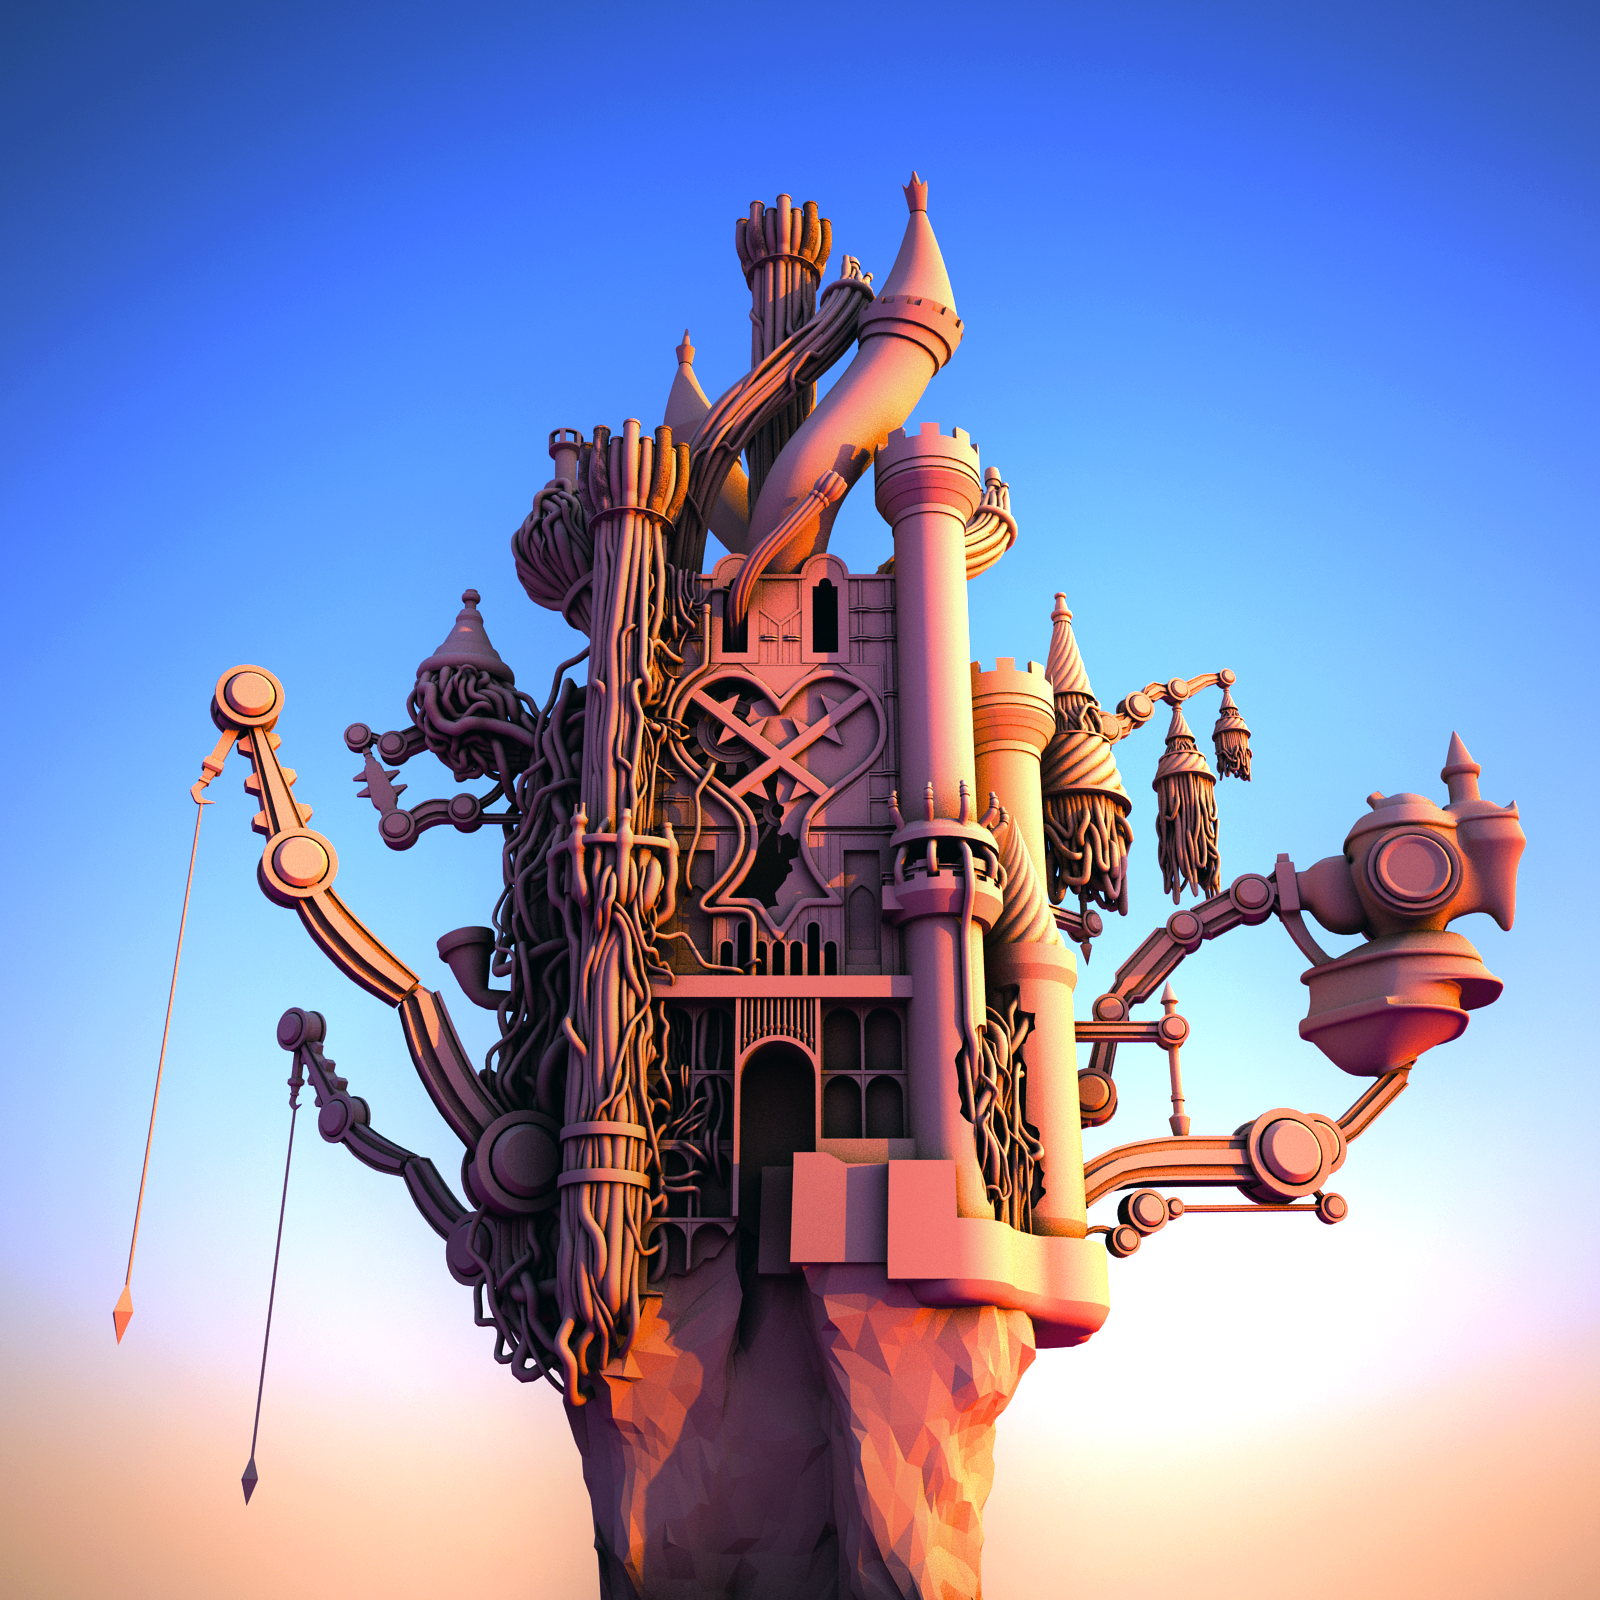 3D Hollow Bastion by Filtered-Suliva